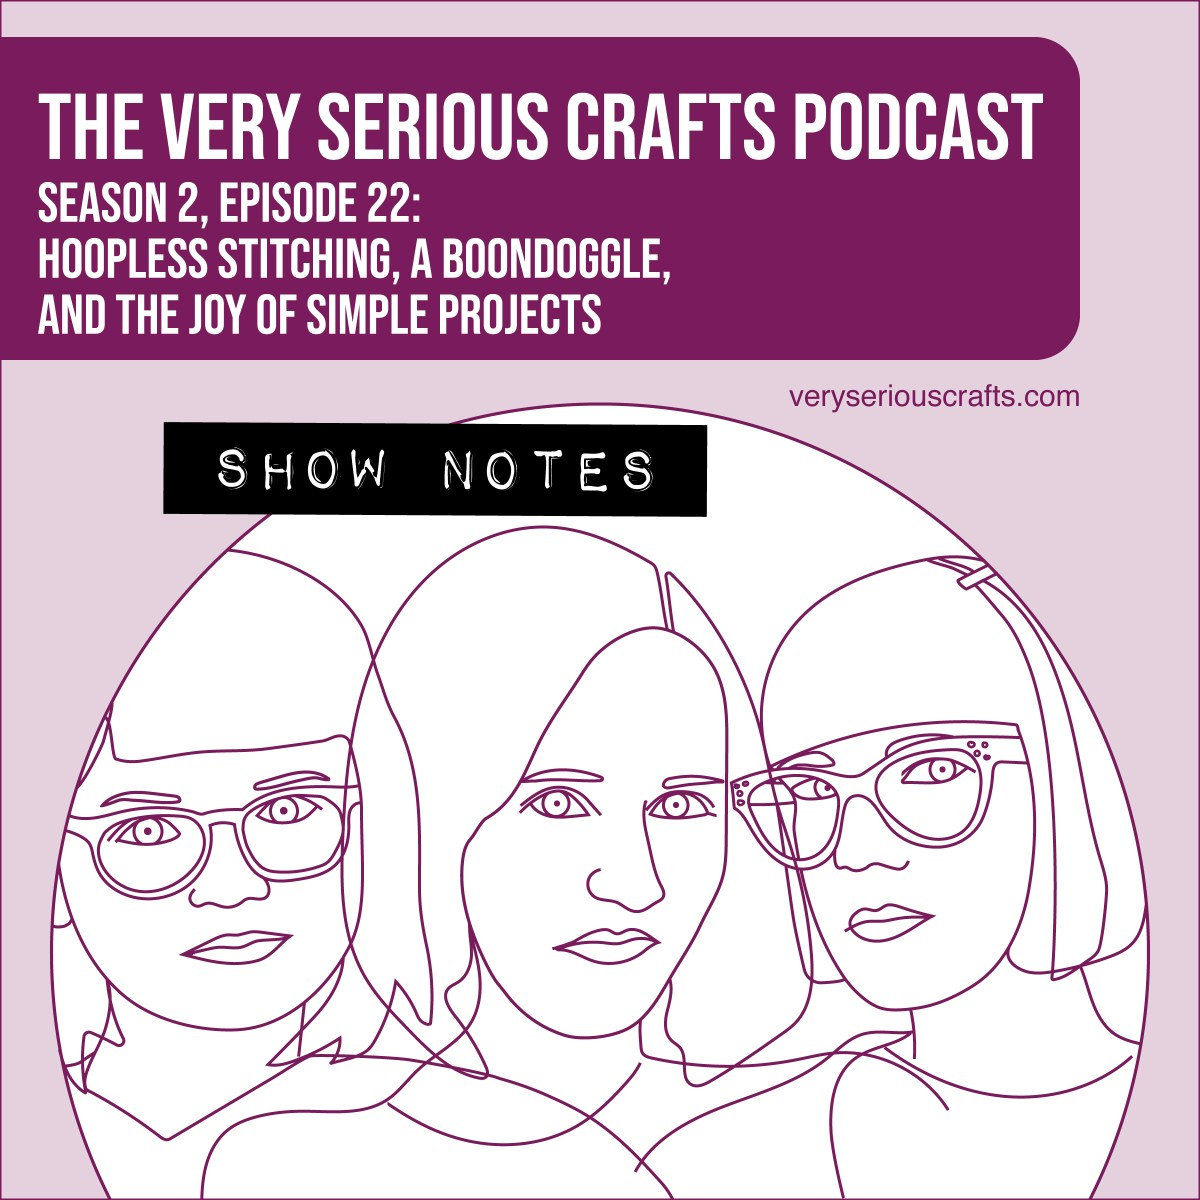 The Very Serious Crafts Podcast, Season 2: Episode 22 – Show Notes